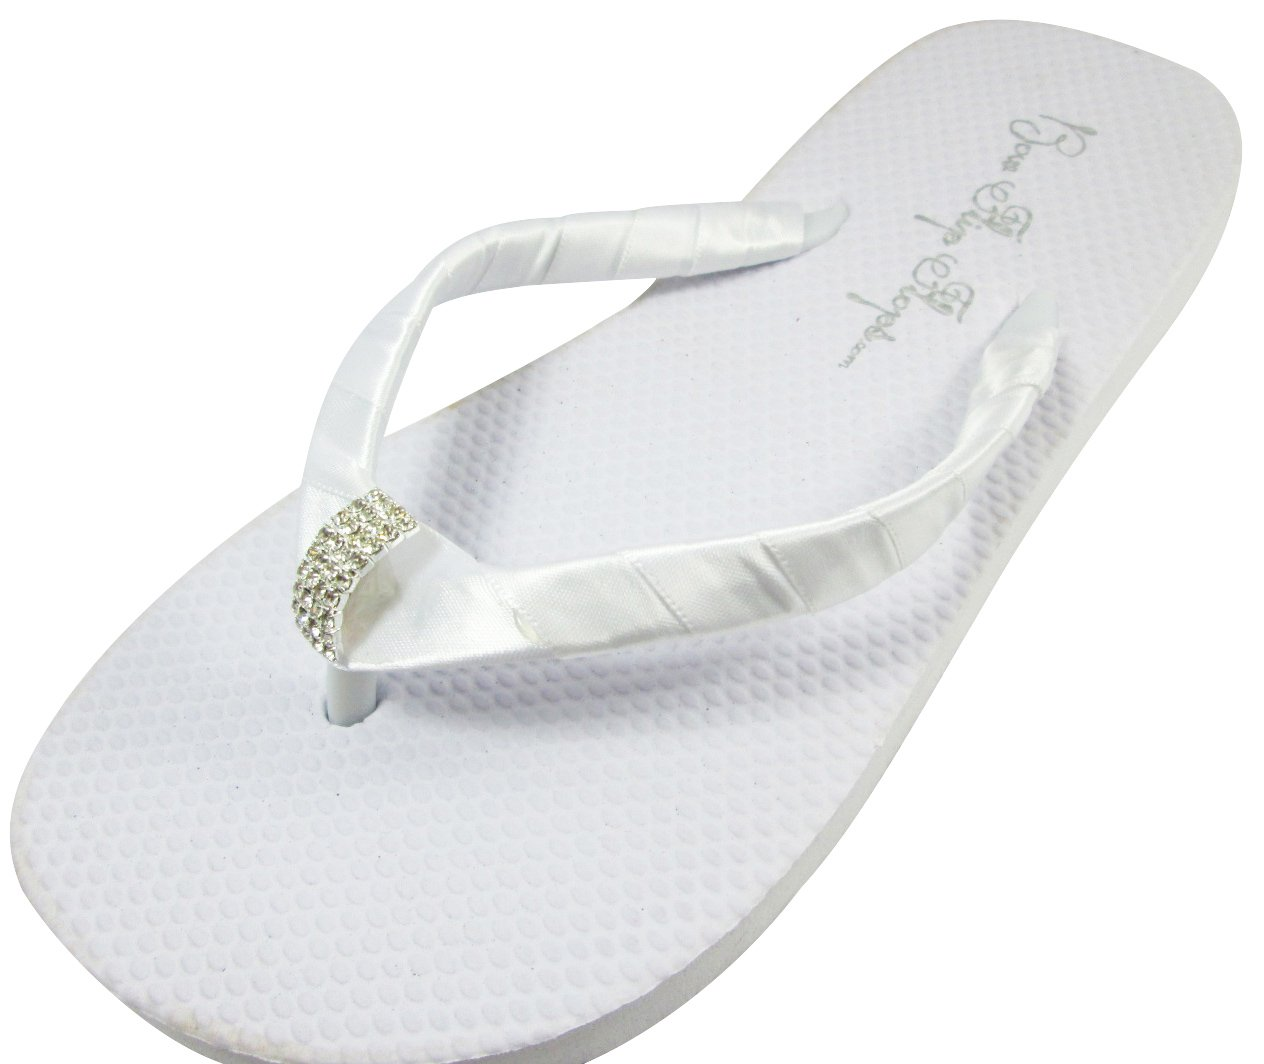 fdf3656b2 Amazon.com  Bridal Flip Flops Wedding White Flat Bride Emerald Cut Jewel  Satin Rhinestone Flip Flops  Handmade